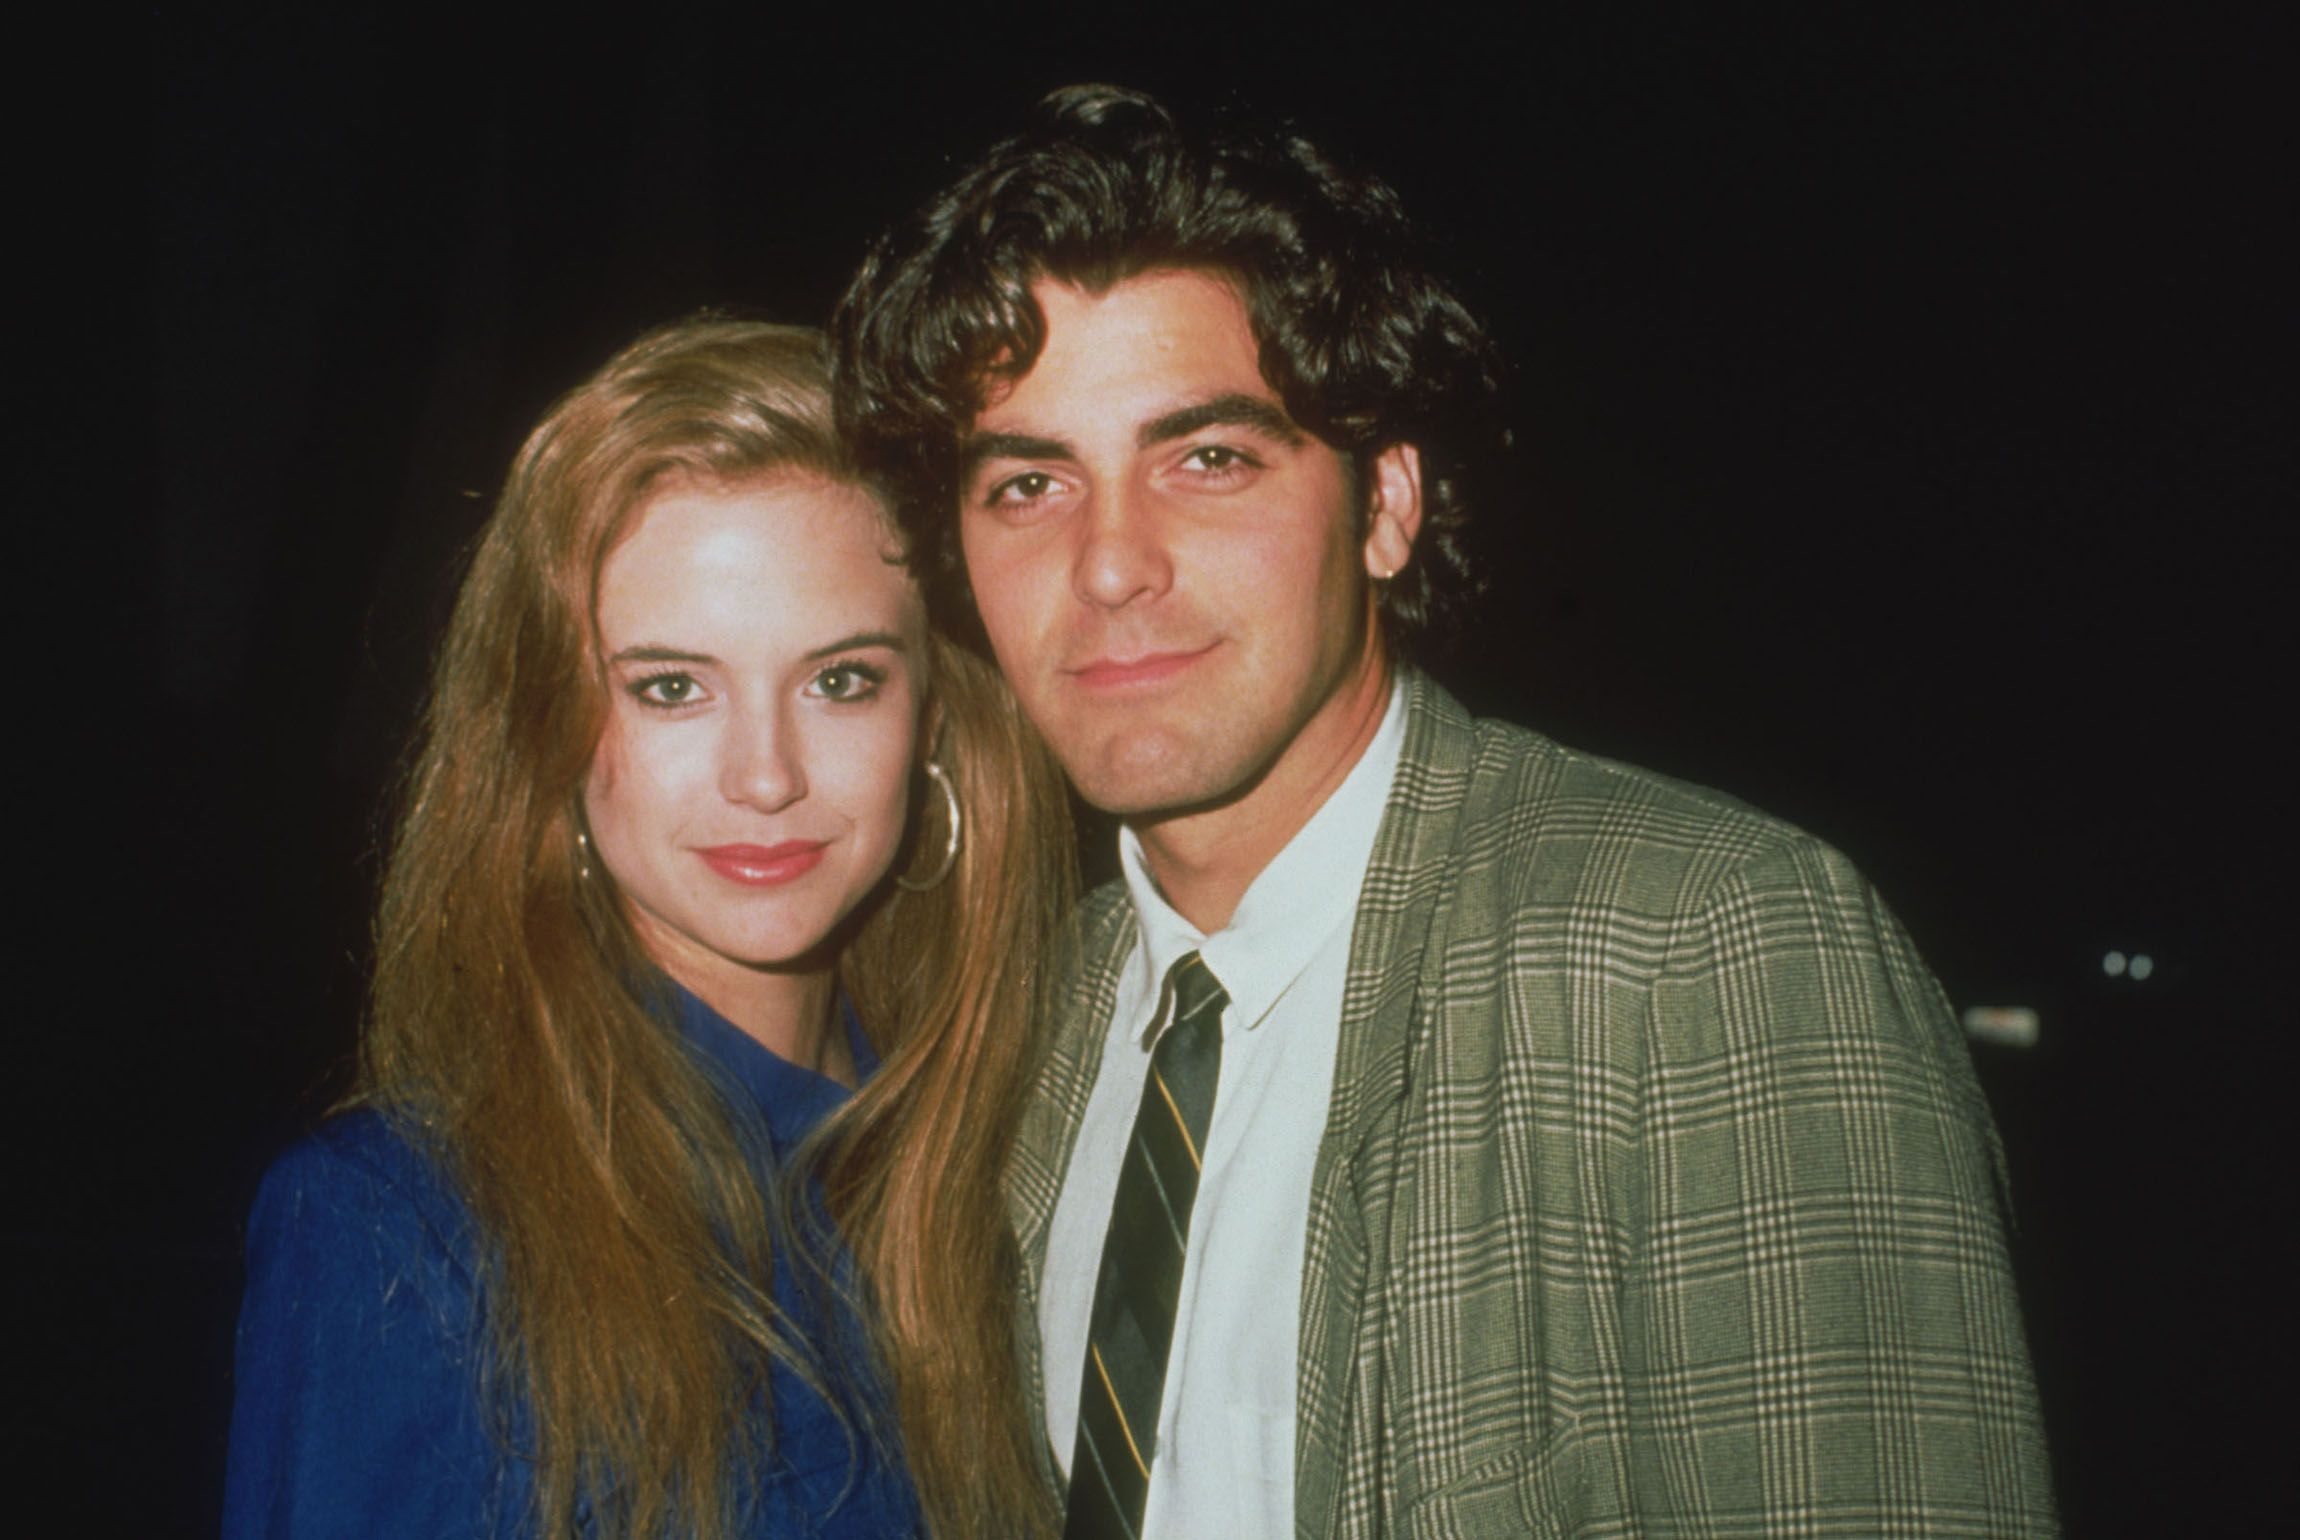 Clooney and Kelly Preston, who he dated and lived with, photographed together in 1985.